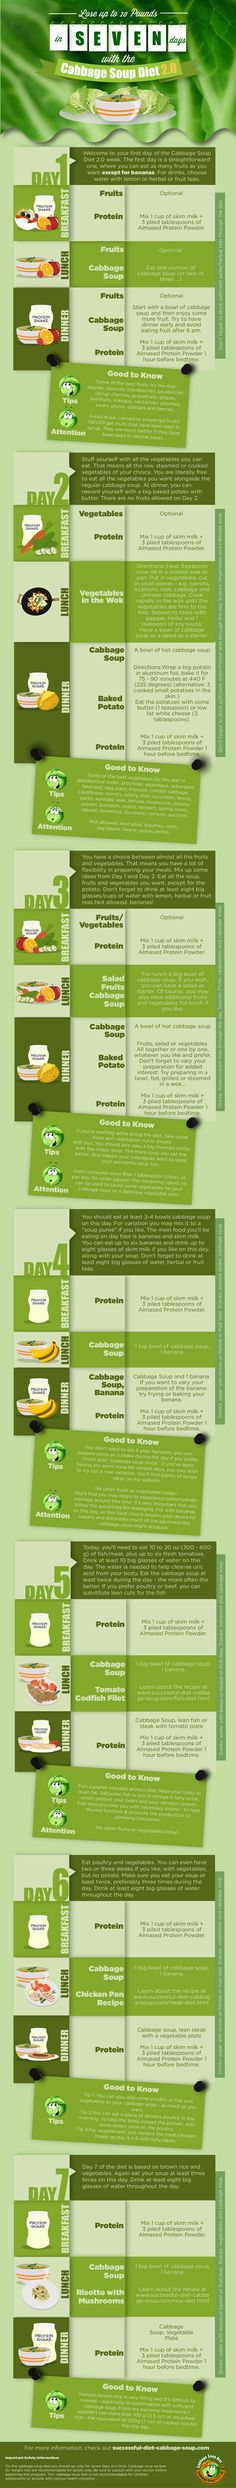 7 day cabbage soup diet 2.0 Infographic: Source: http://www.successful-diet-cabbage-soup.com/free-infographic-cabbage-soup-diet.html